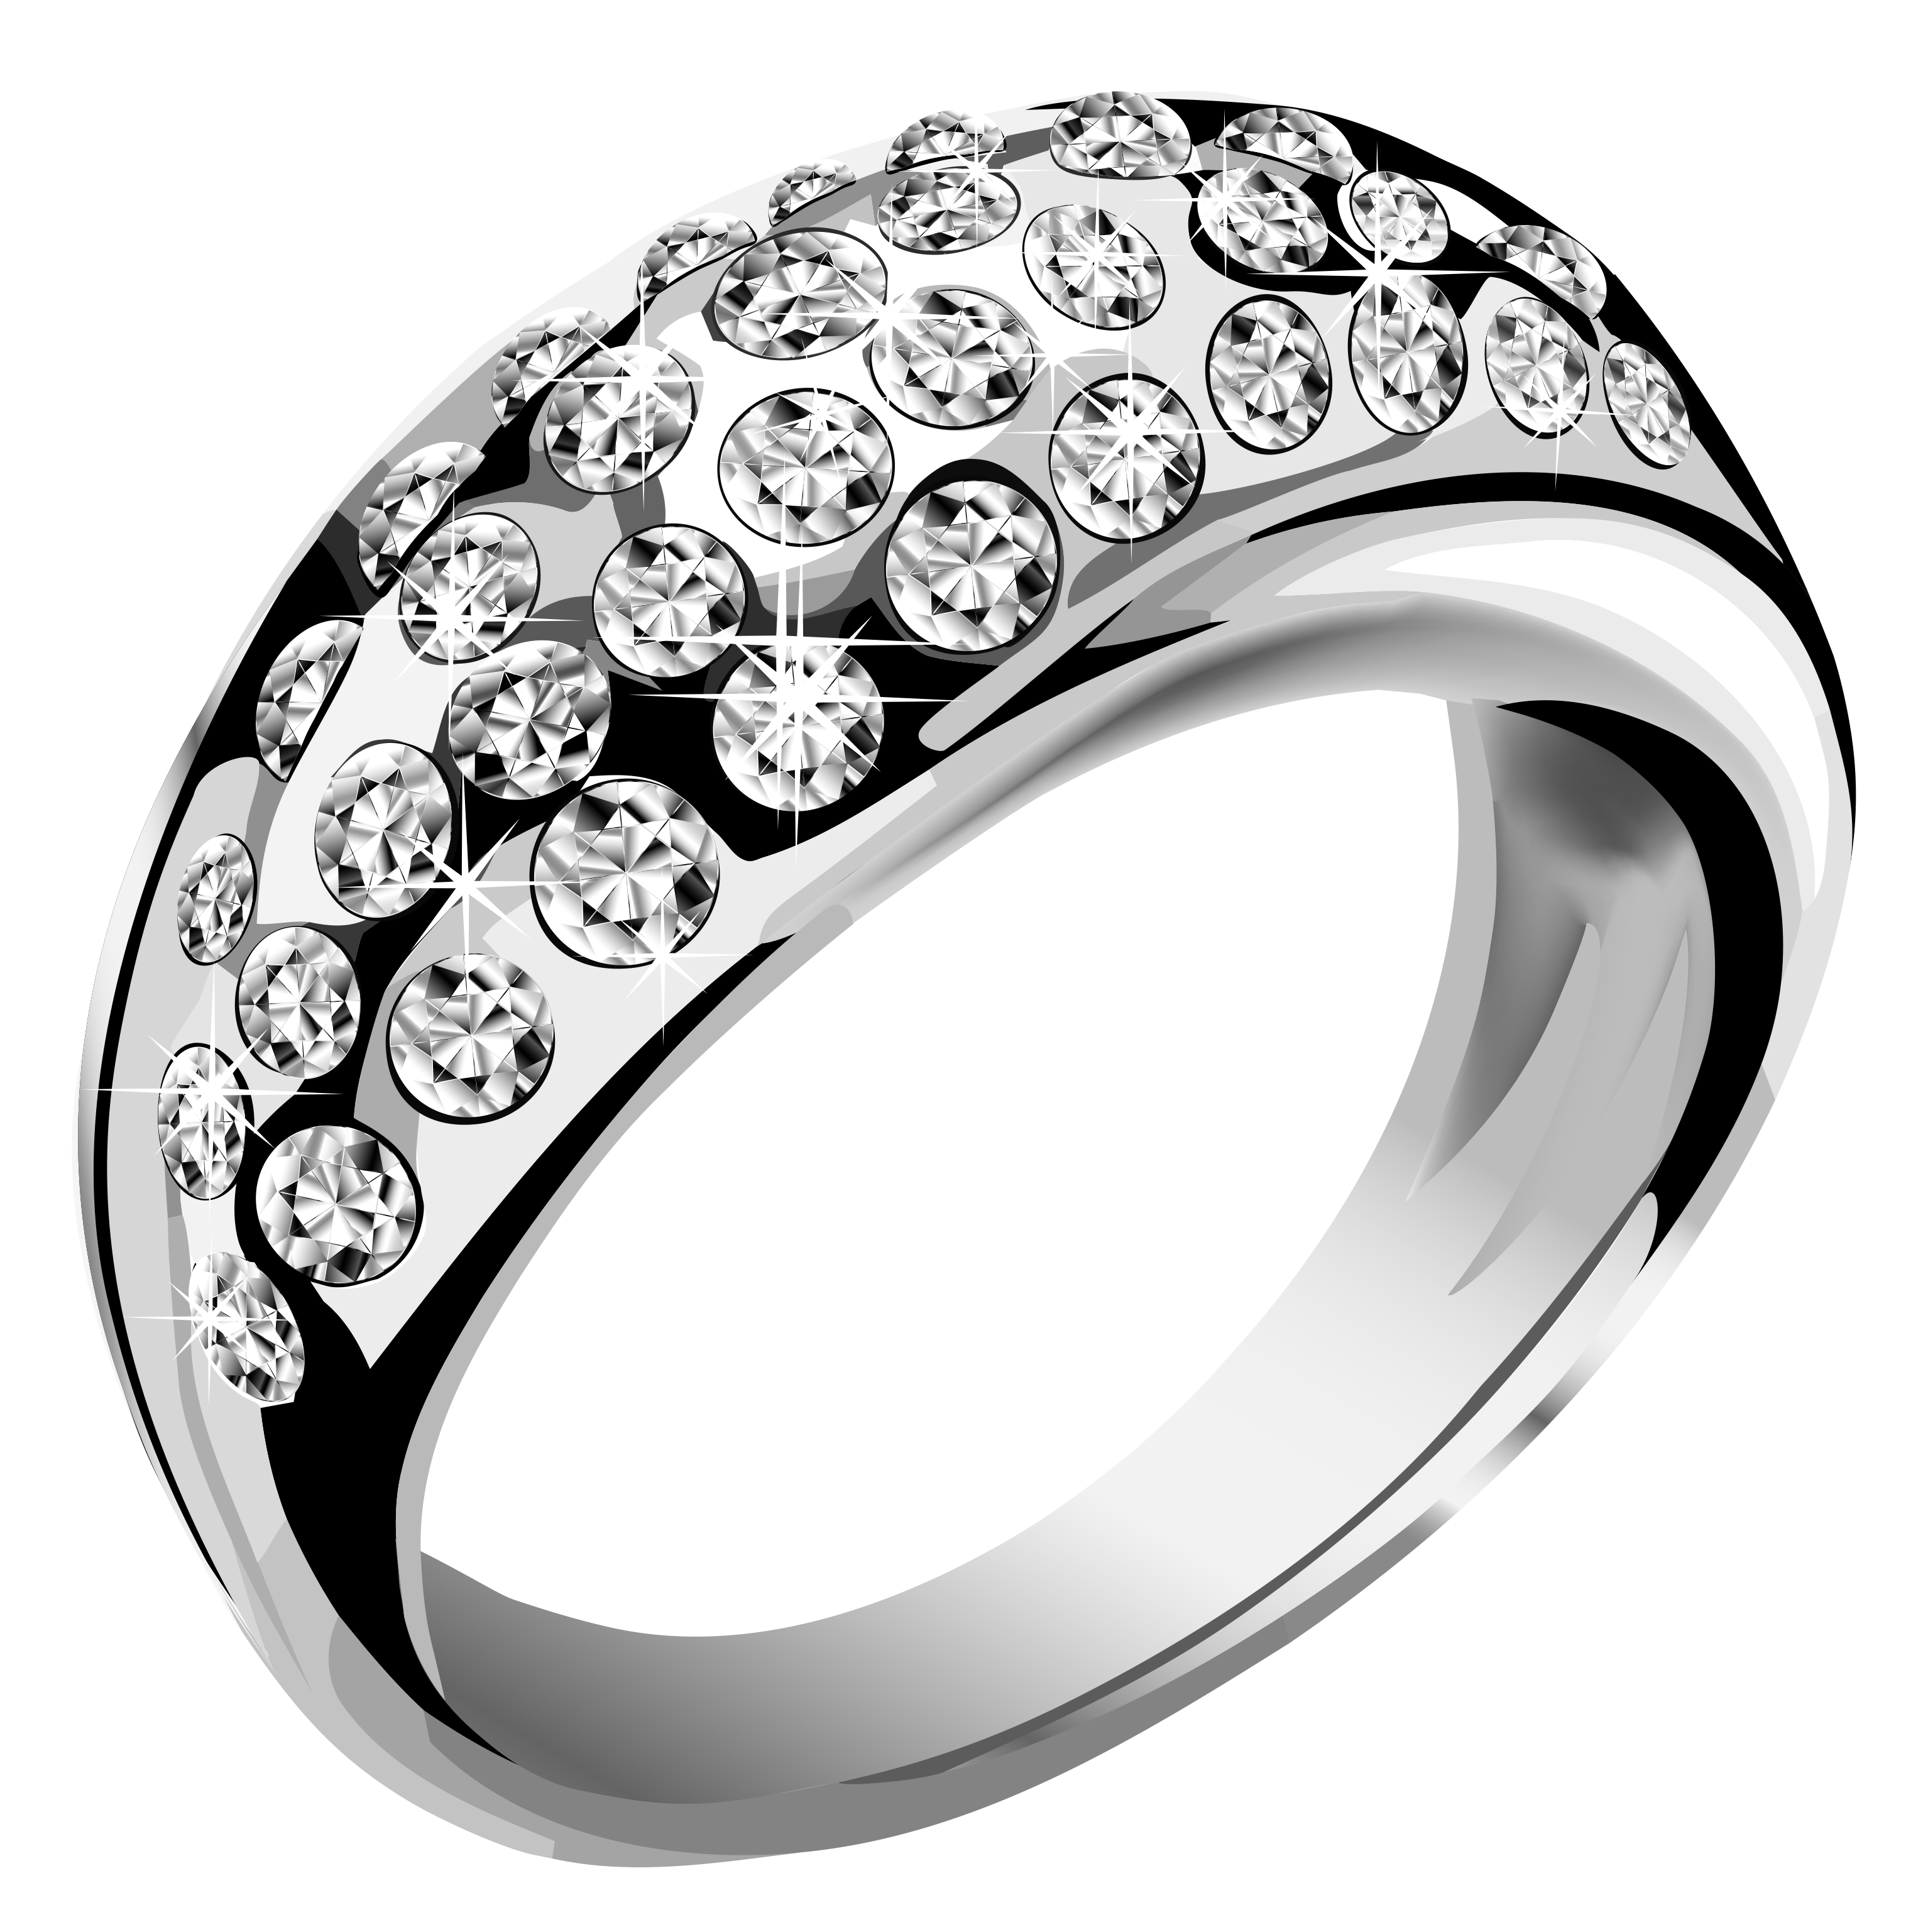 Silver ring with white. Engagement clipart transparent background